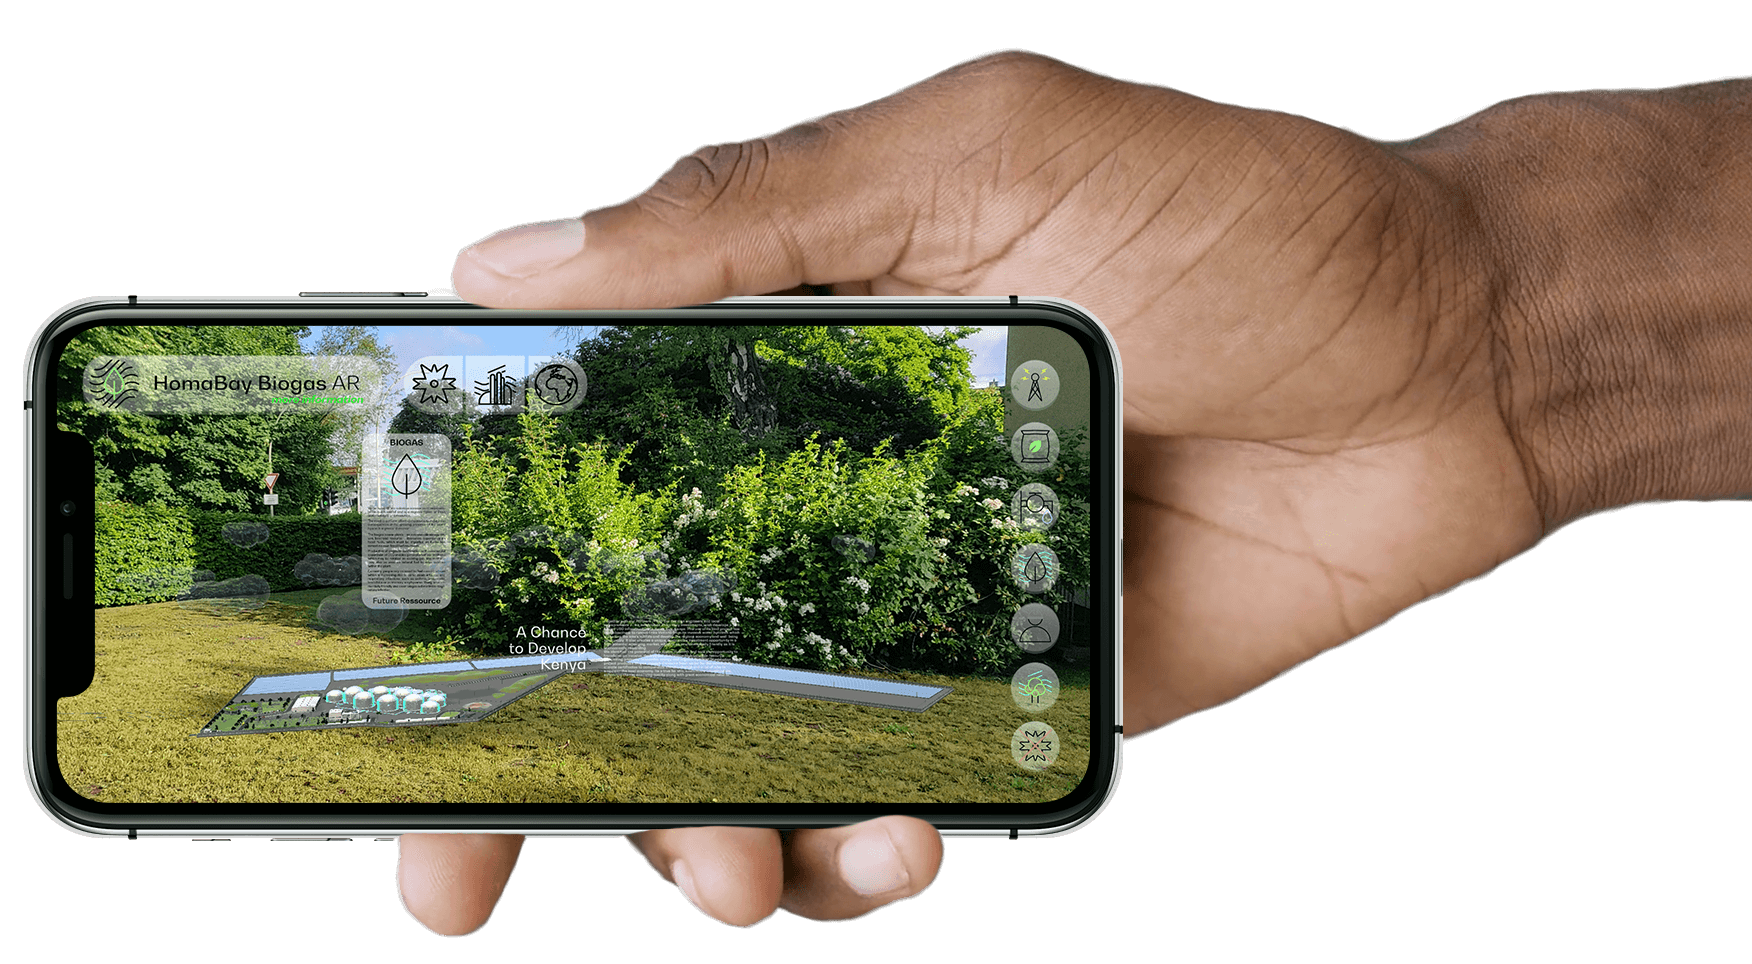 Hand holds Smartphone in landscape with PlantBlue app